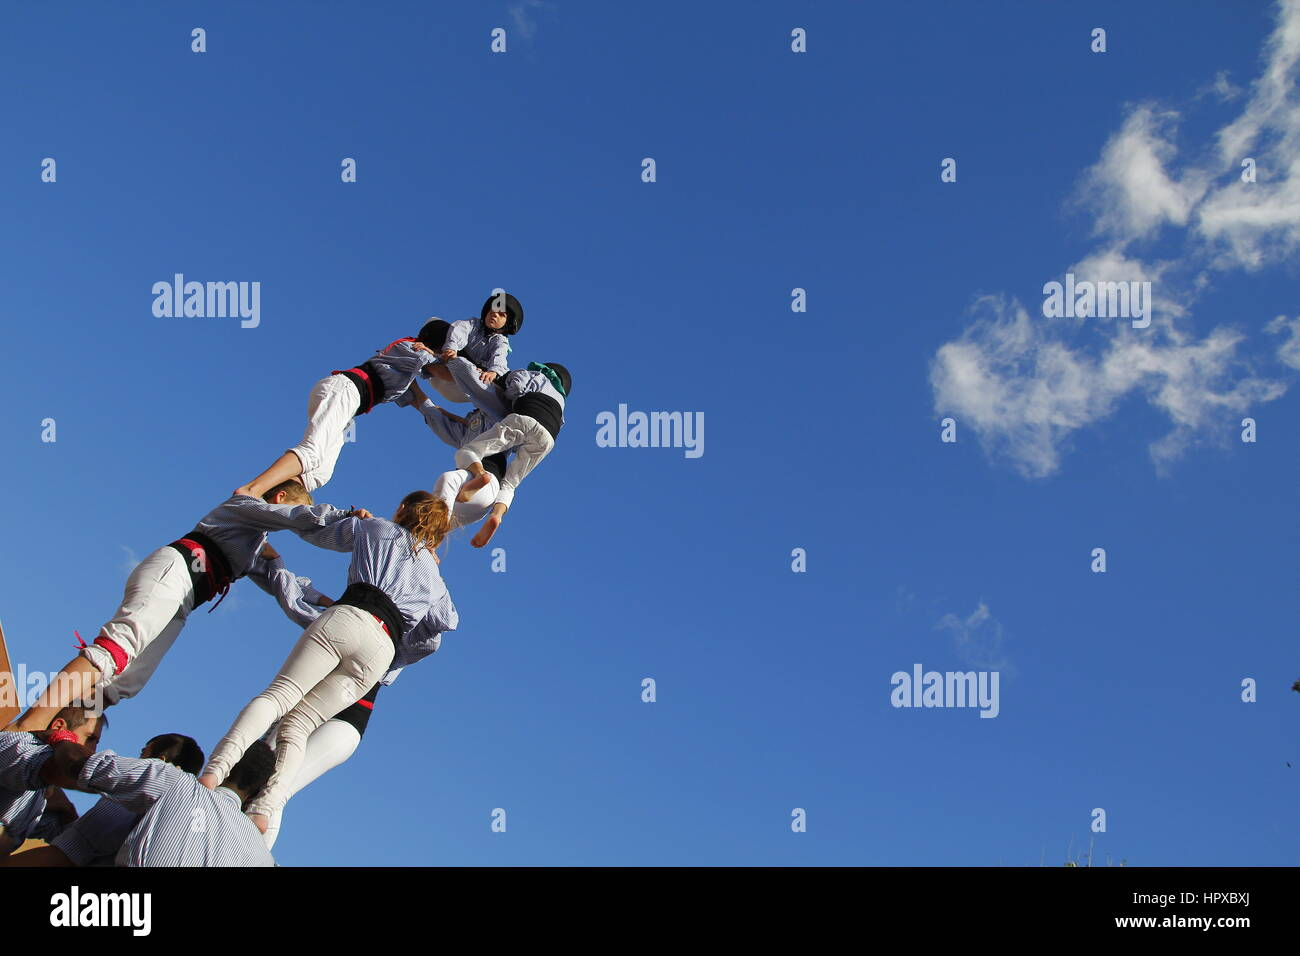 People making human towers, a traditional spectacle in Catalonia called 'castellers', with people climbing - Stock Image